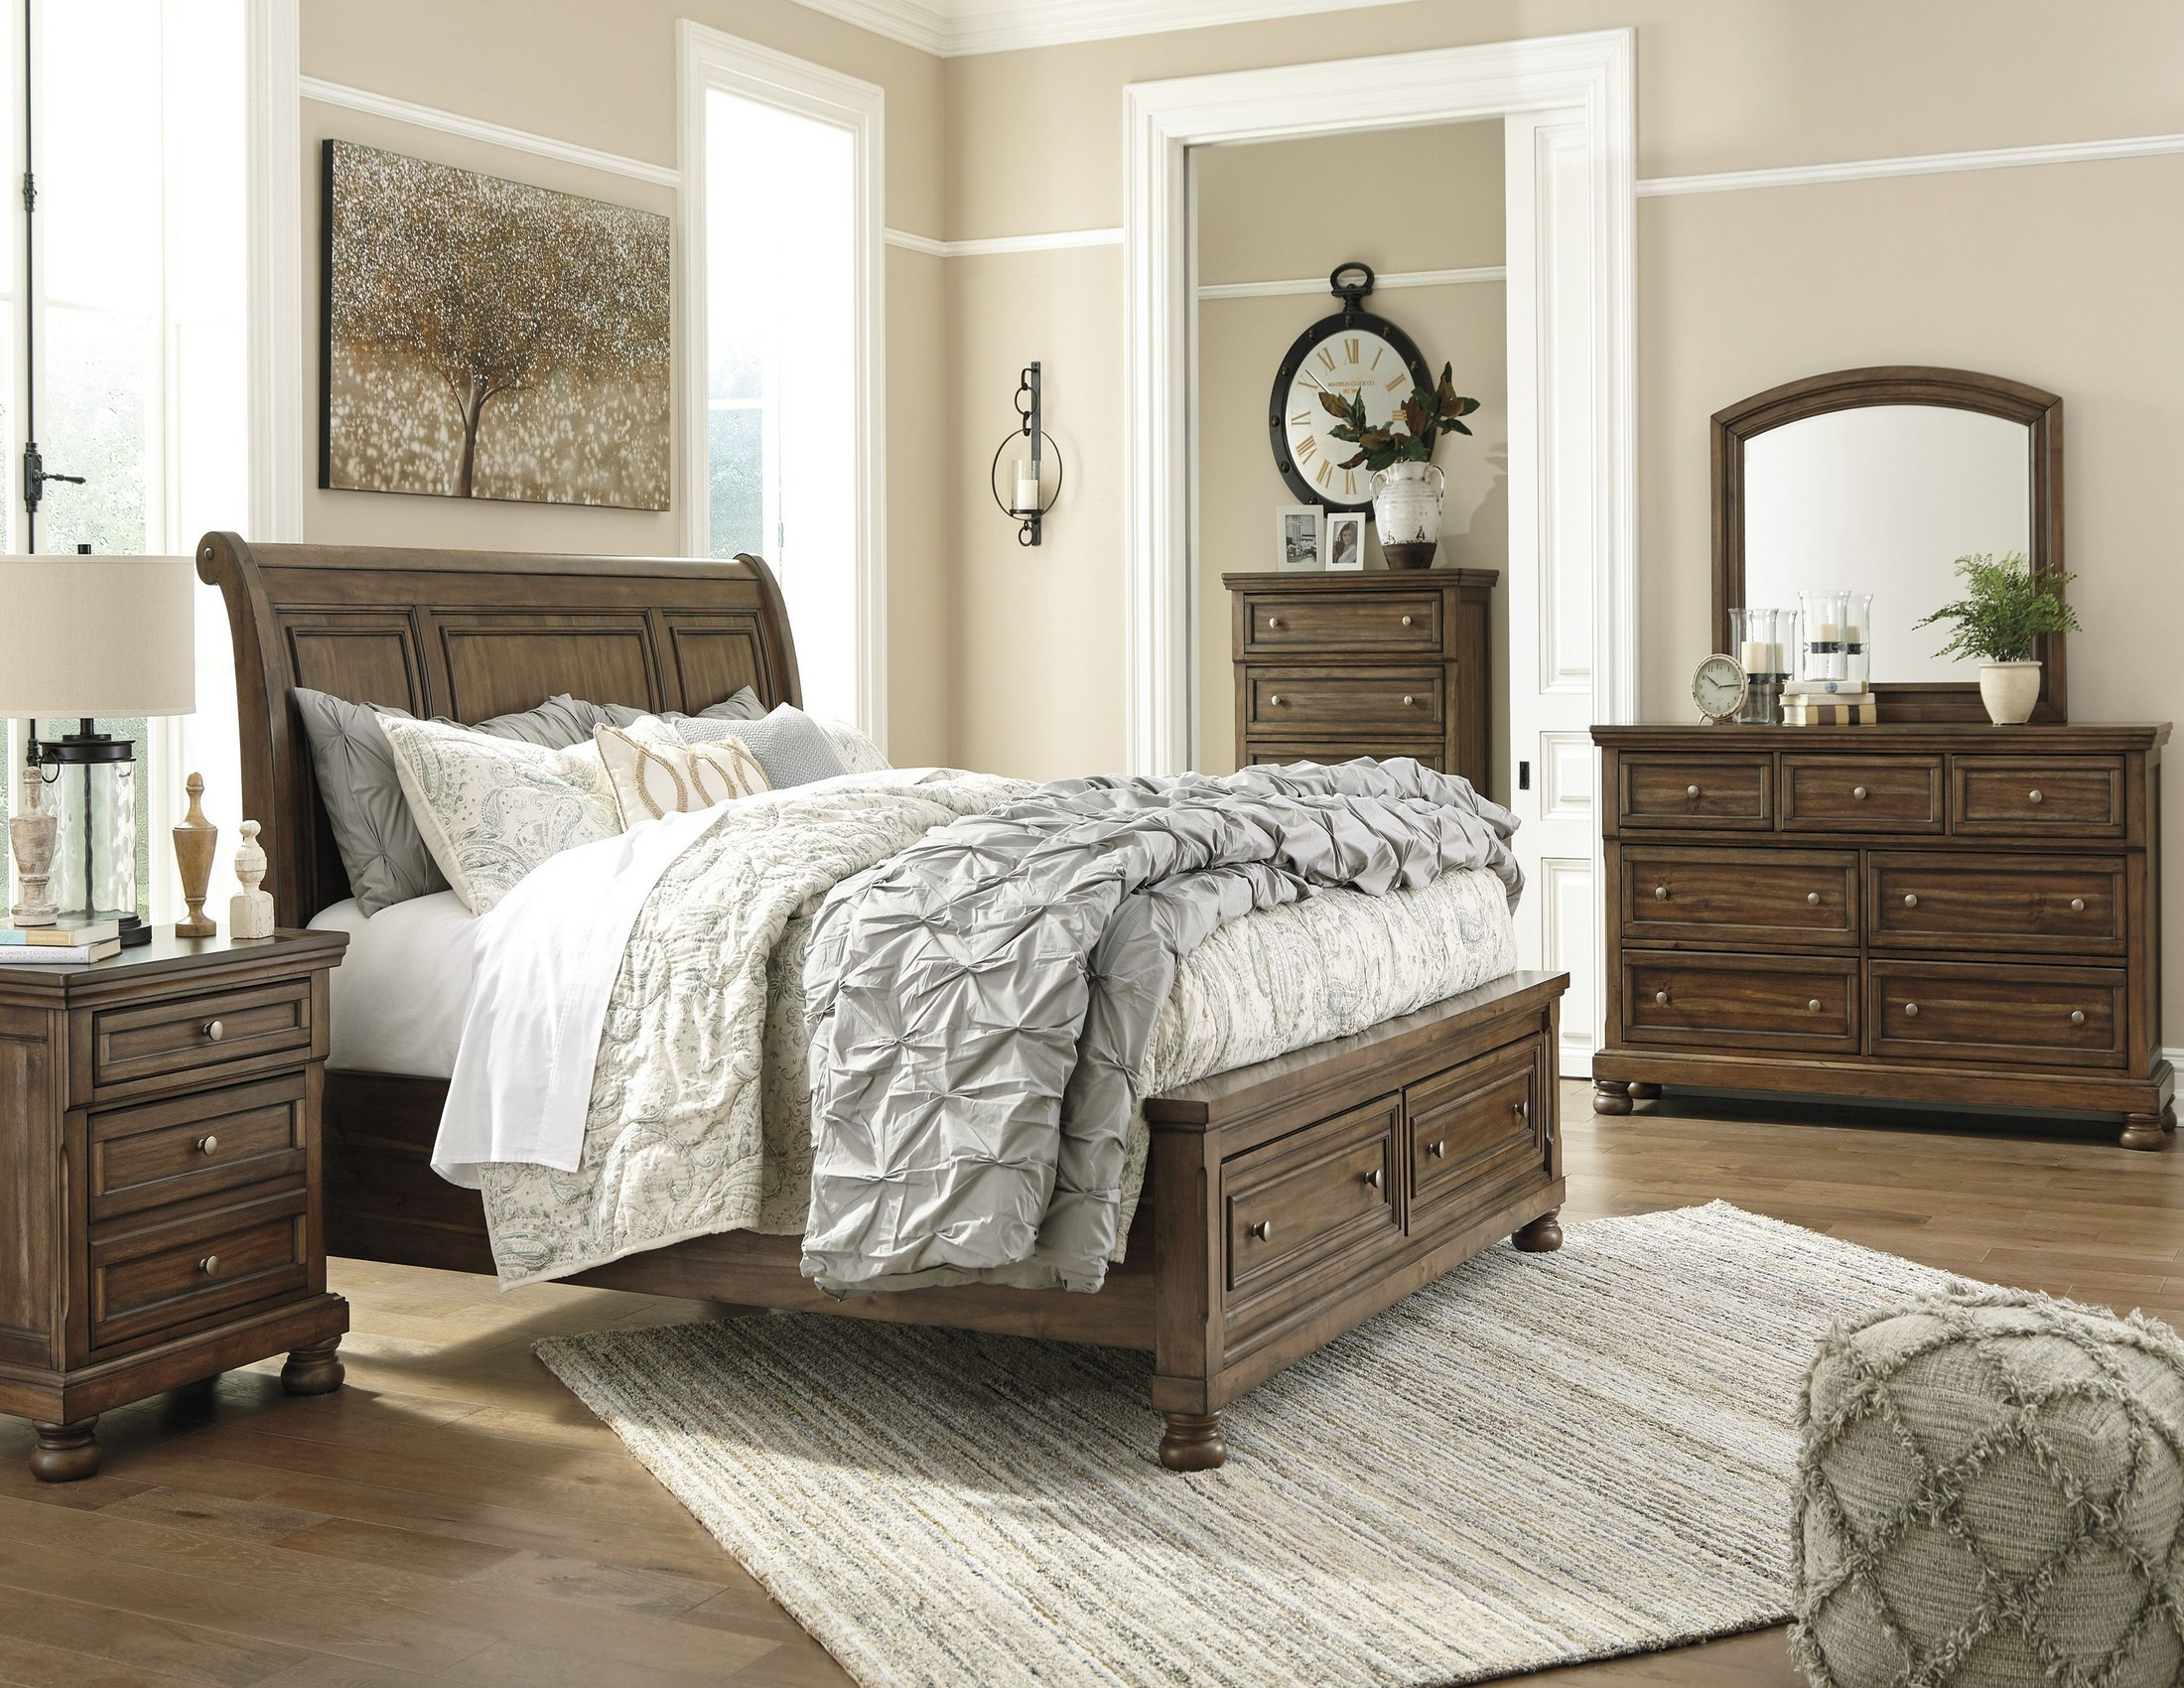 Flynnter Medium Brown Sleigh Storage Bedroom Set - 1StopBedrooms.